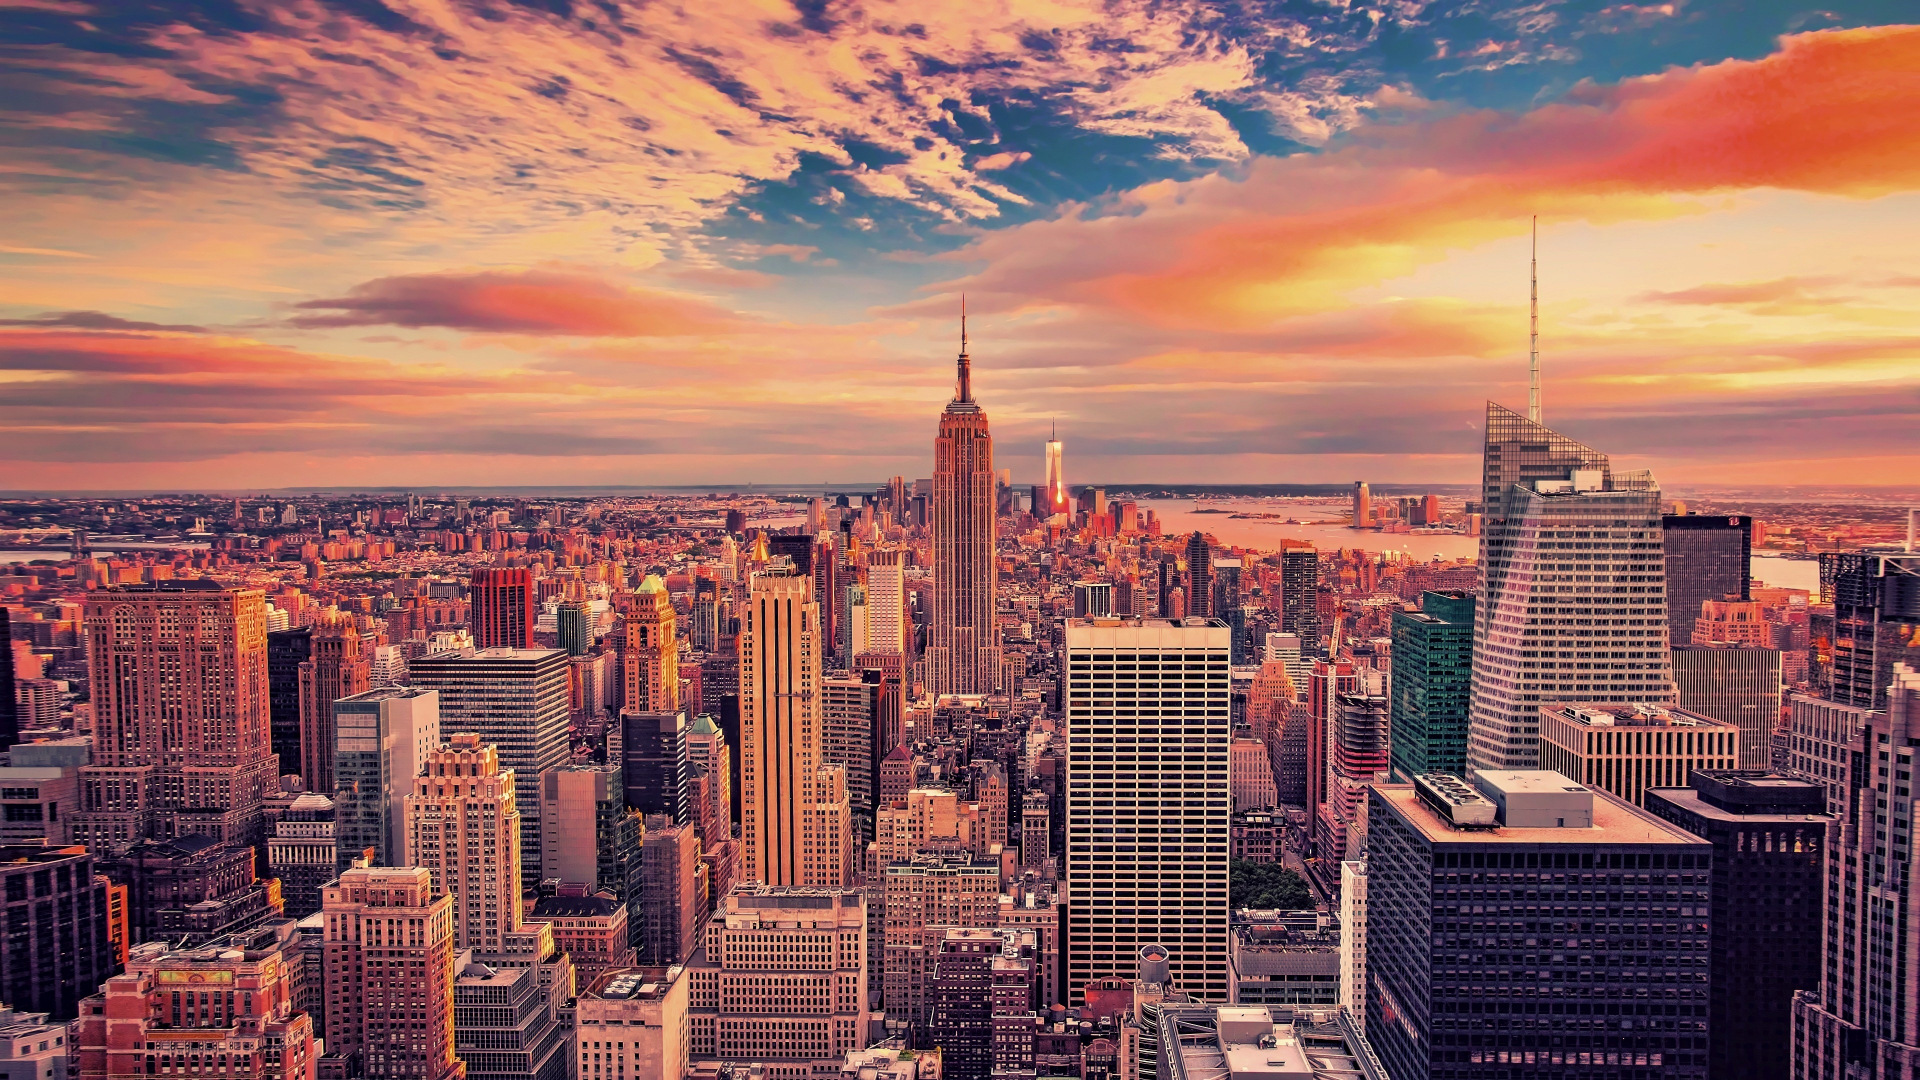 1920x1080 wallpaper Empire state building, buildings, skyscrapers, new york city, sunset, 4k